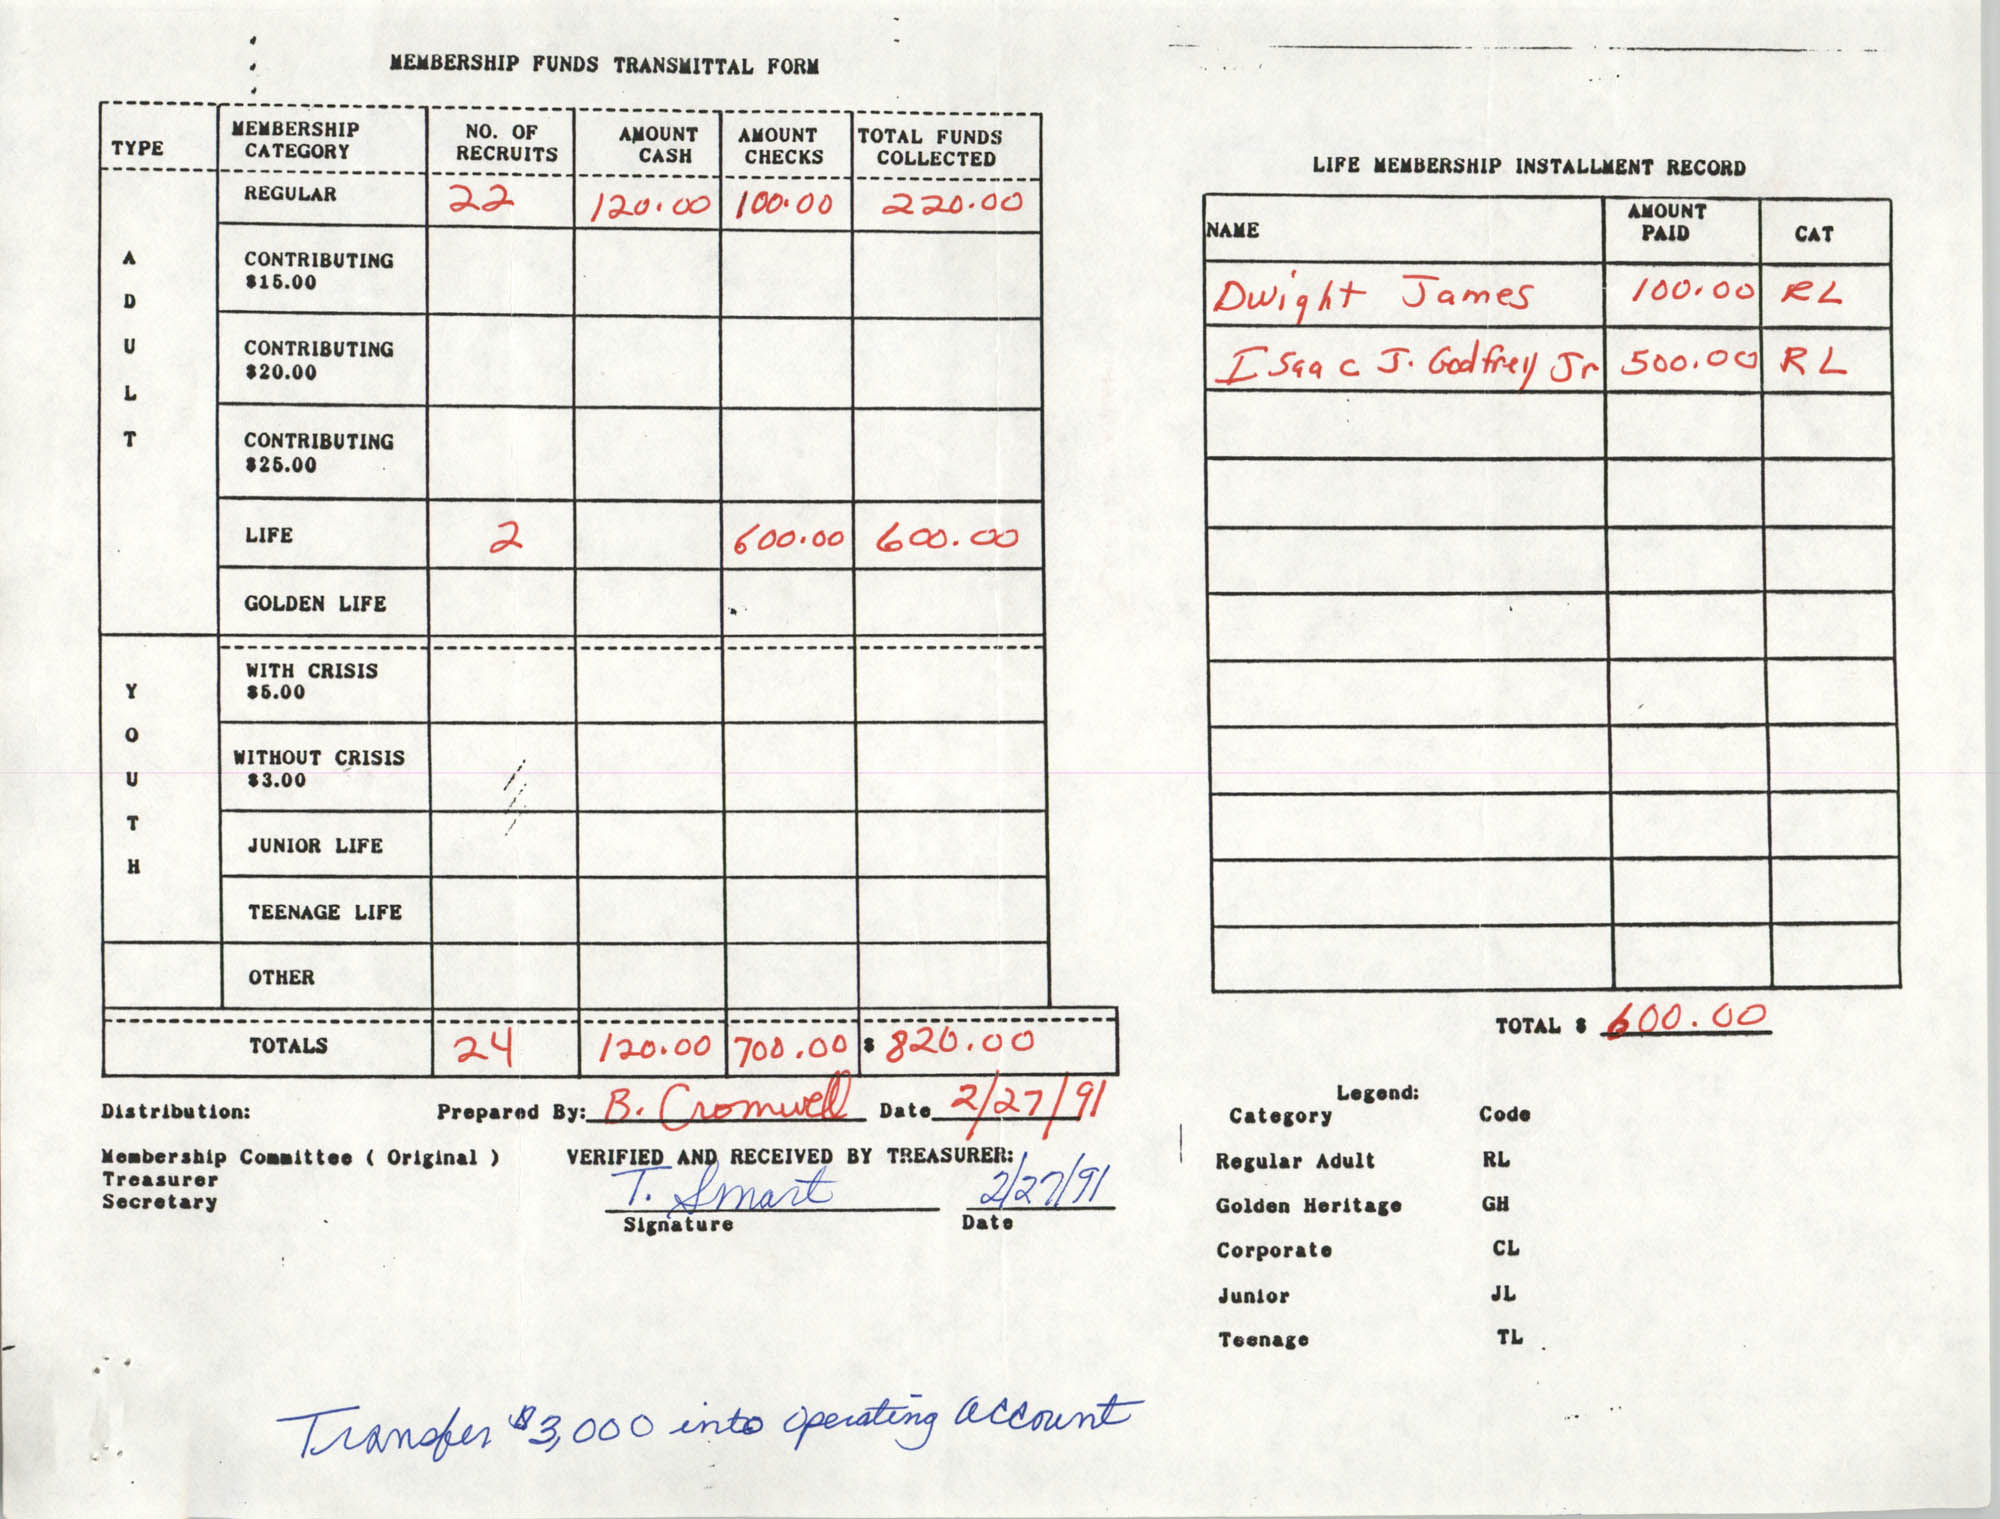 Charleston Branch of the NAACP Funds Transmittal Forms, March 1991, Page 1